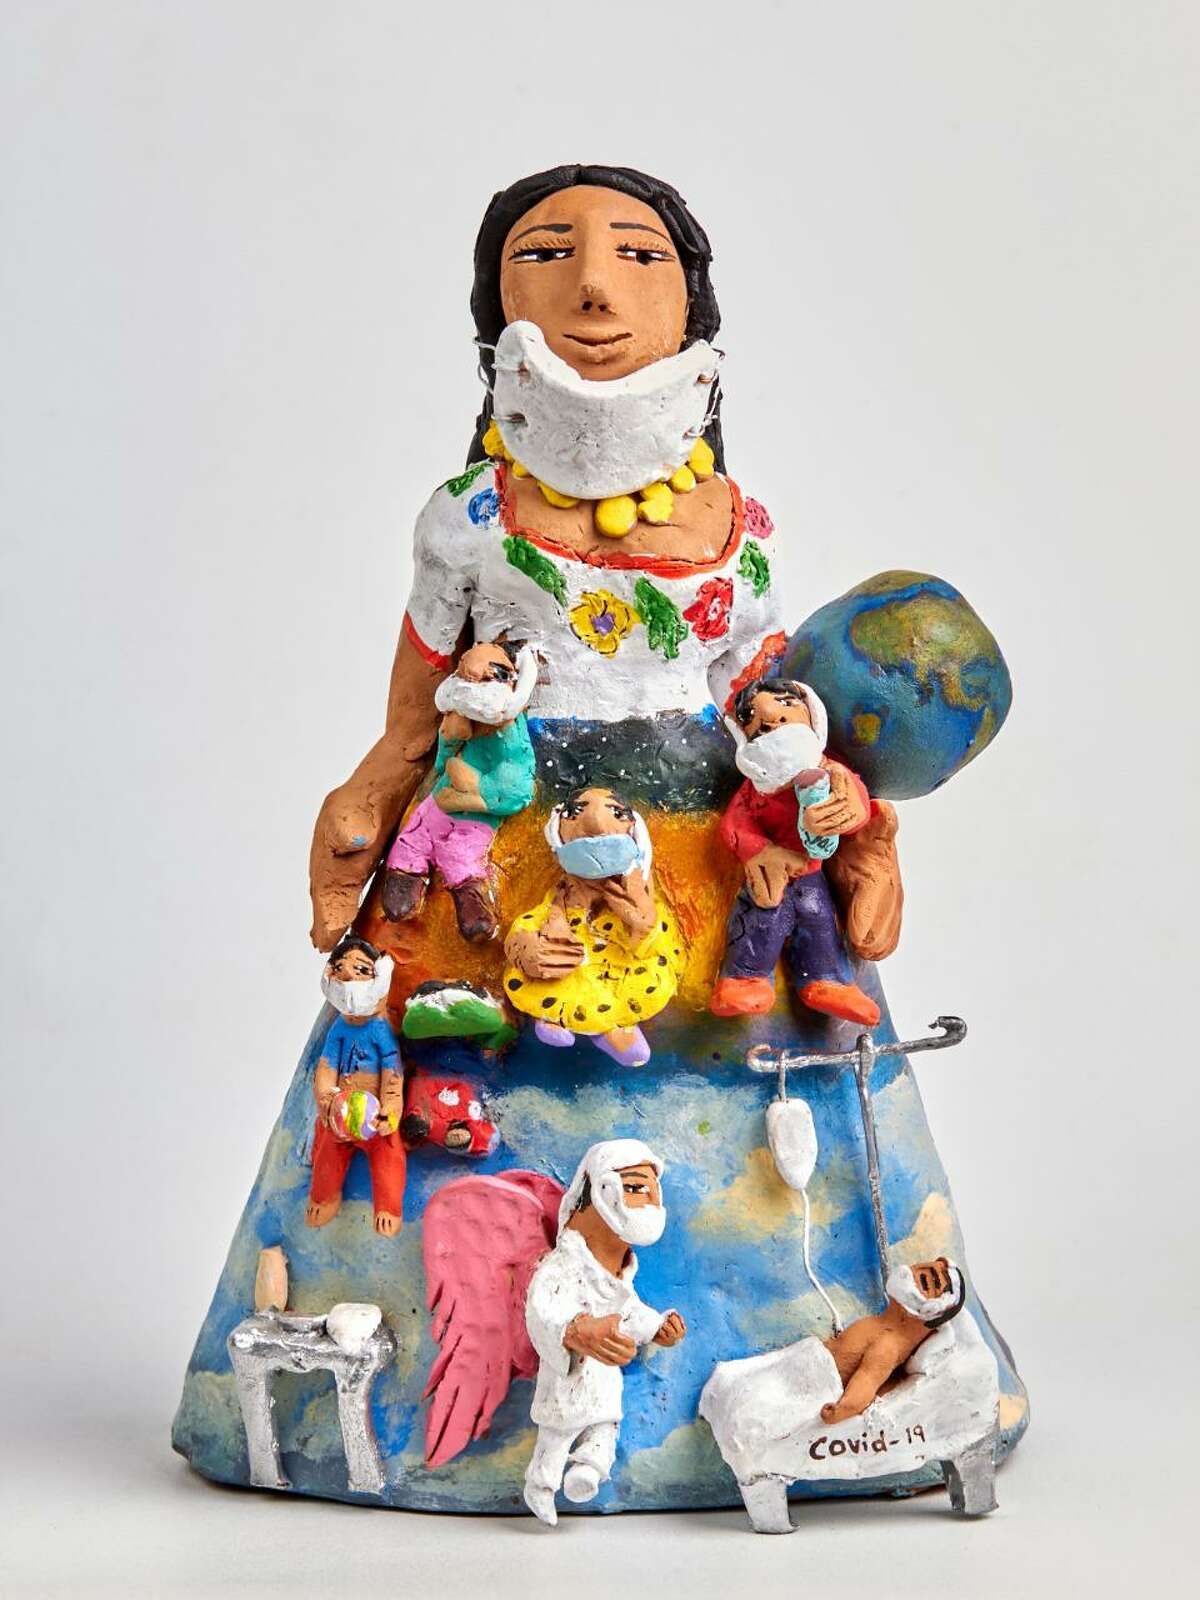 Josefina Aguilar is among the Mexican artists who won a contest judged by Alan Goldberg of New Canaan, who recently donated his extensive collection to the Mexican Museum in San Francisco while working to help artisans in Oxaca earn money lost in the COVID-19 pandemic.